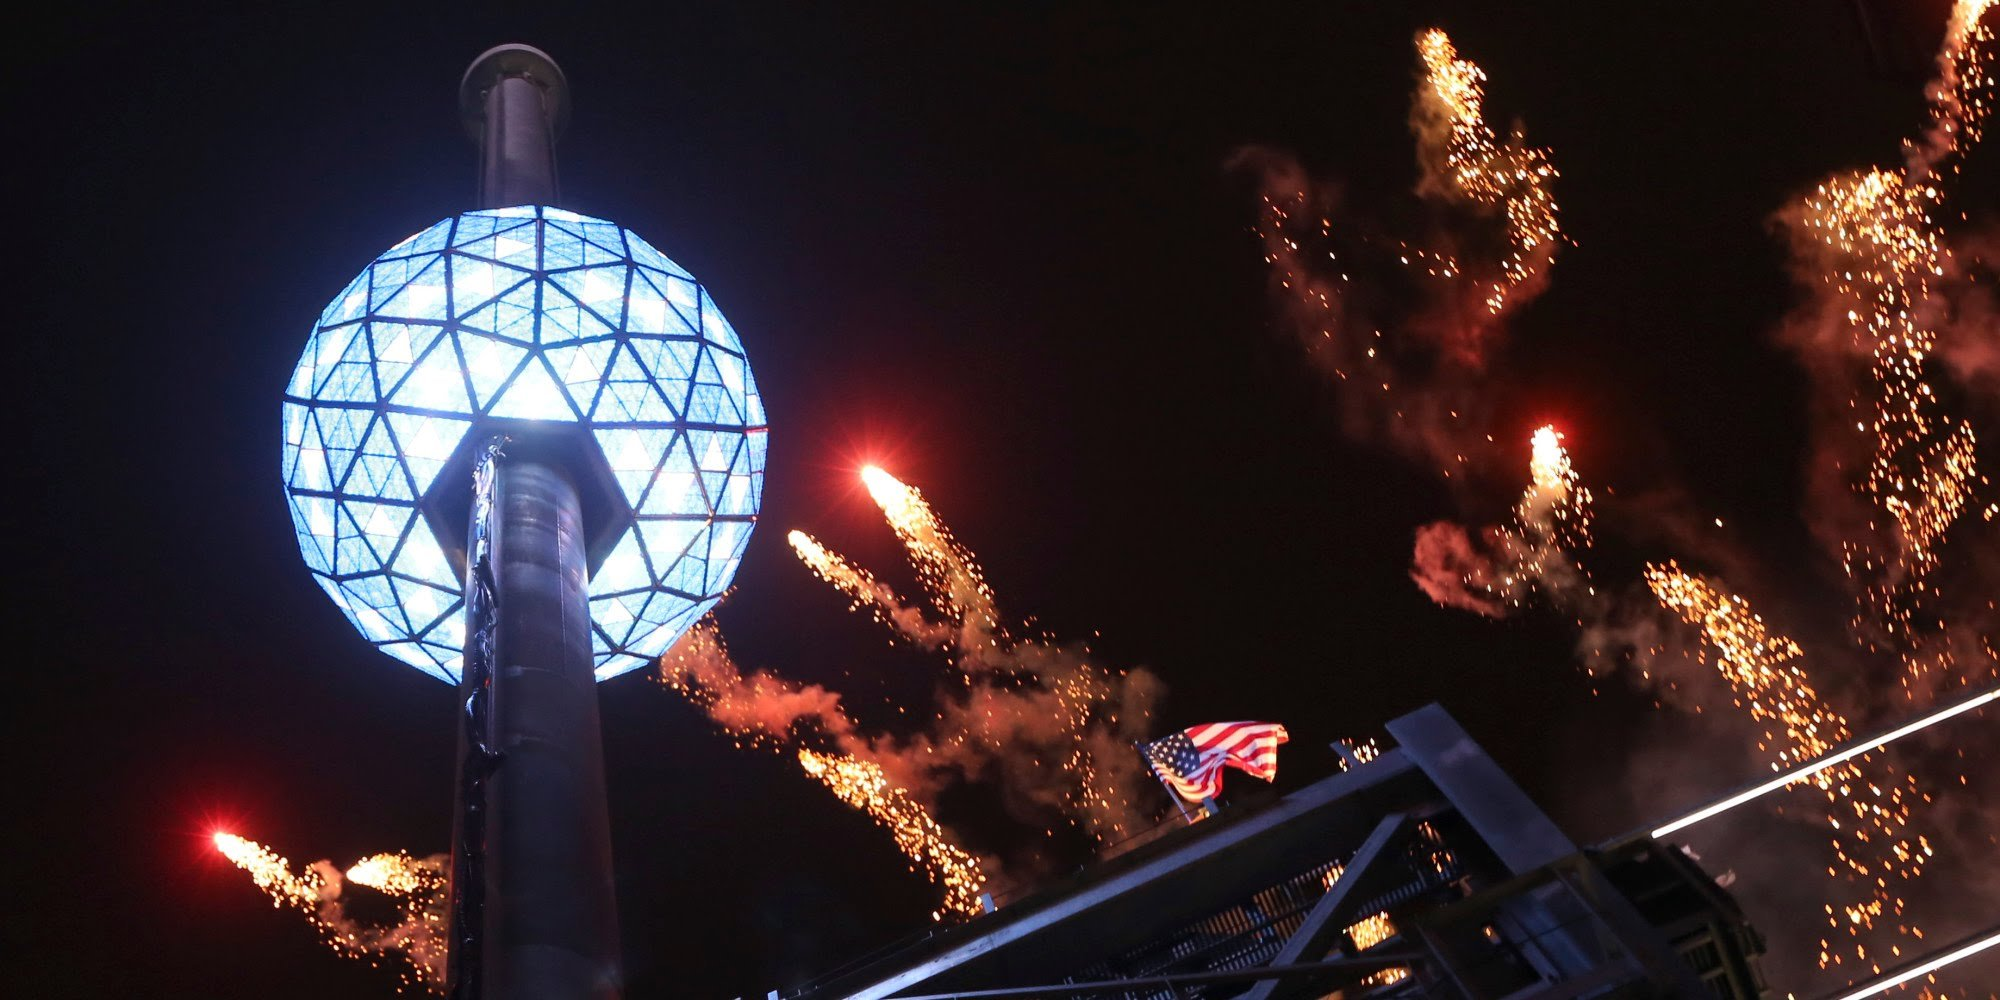 new years ball drop.jpg